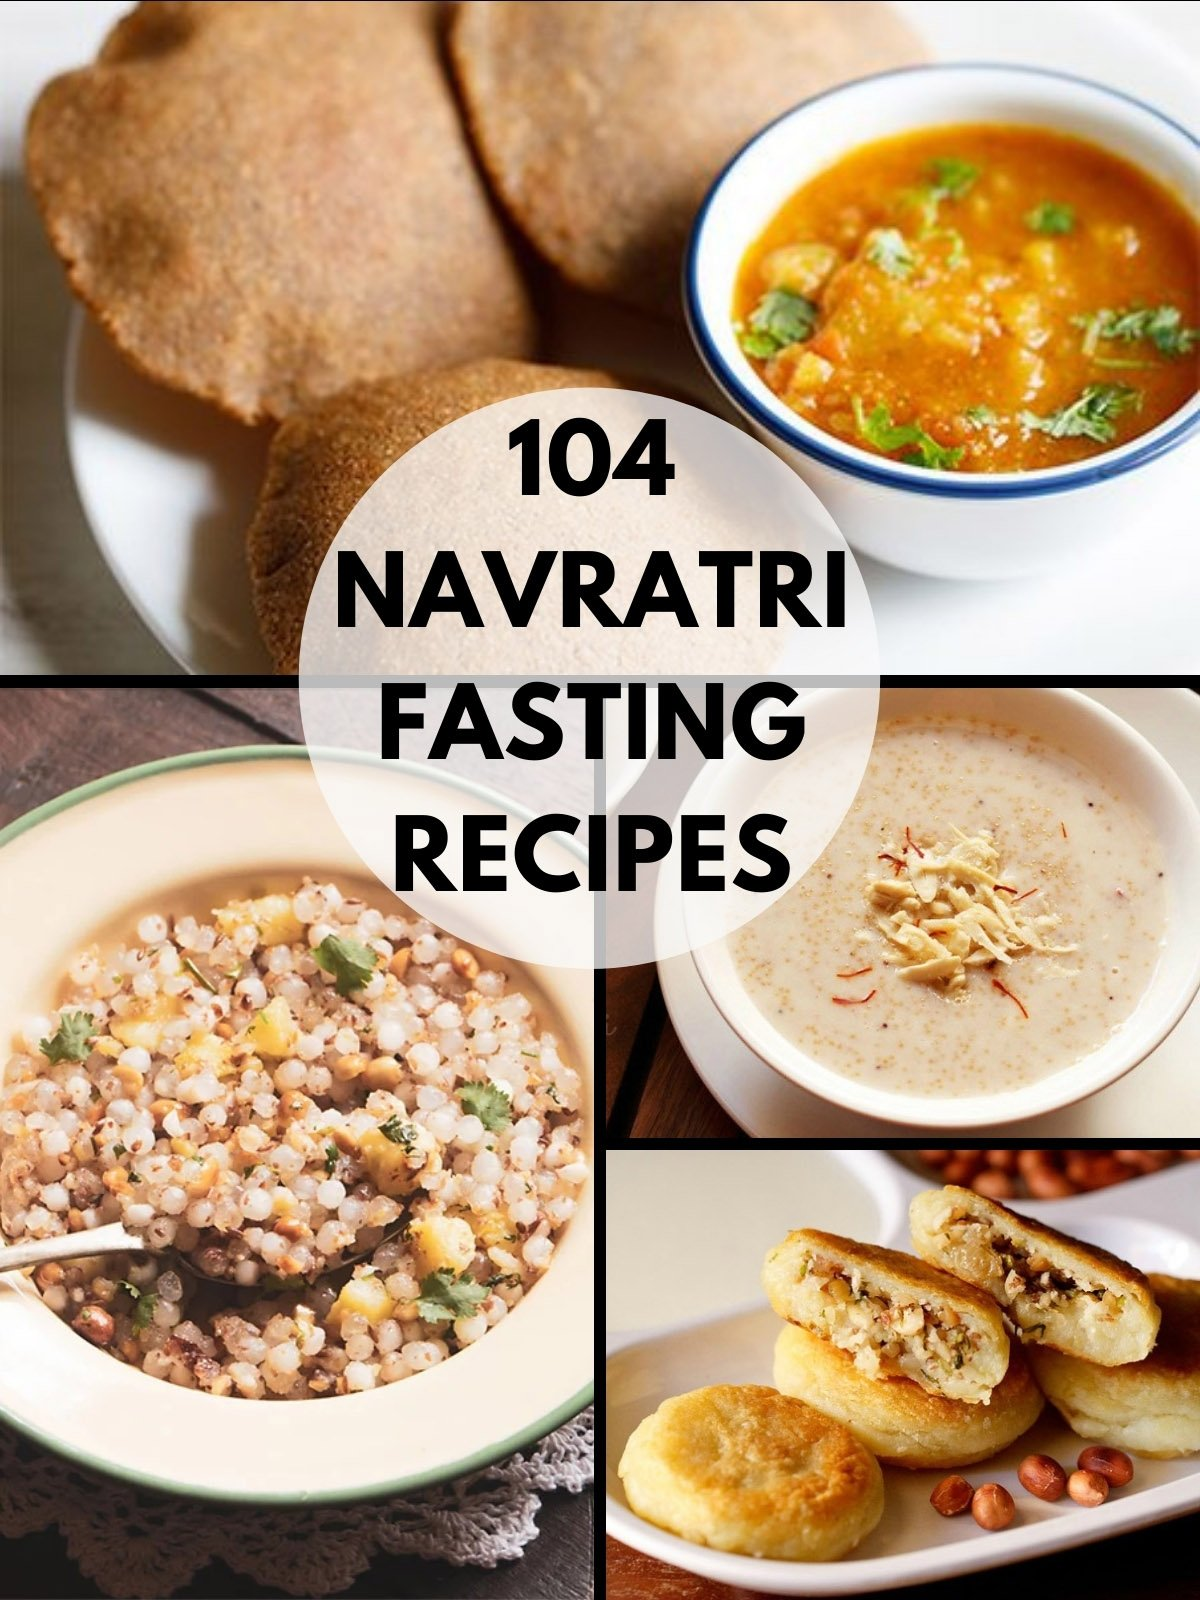 Collage of four navratri recipes with a bold heading of 104 navratri fasting recipes in a center circle